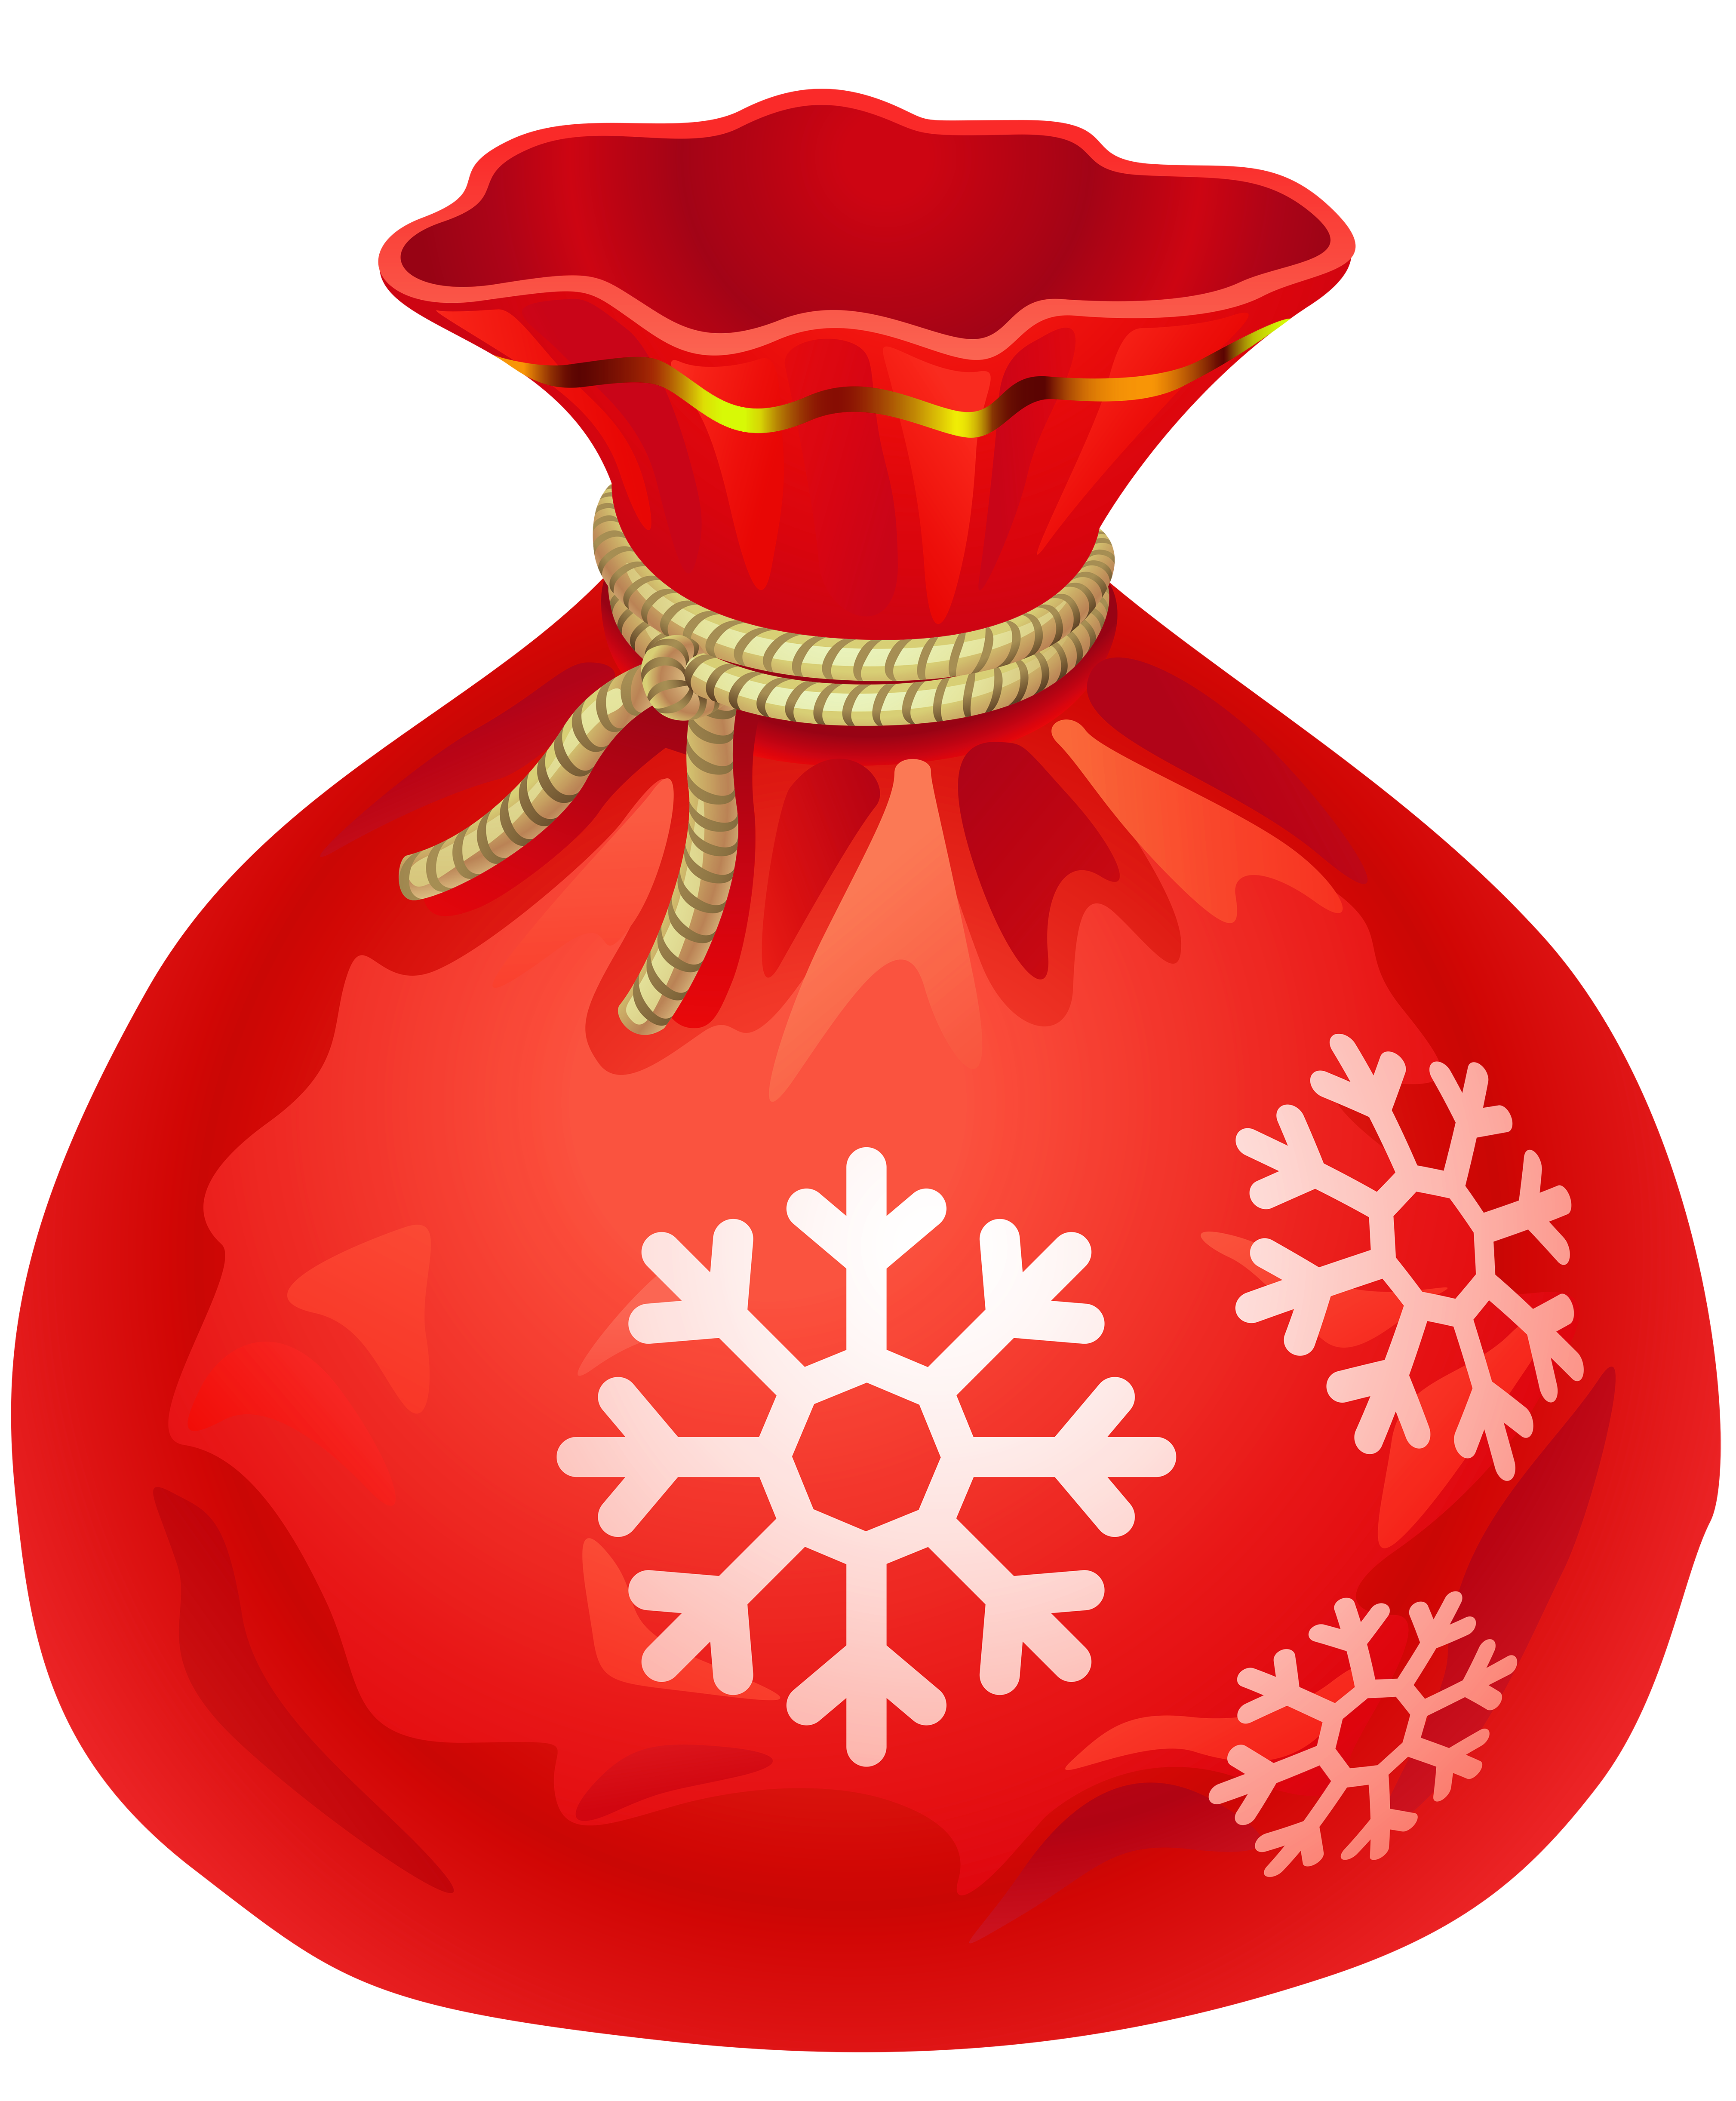 Santa bag png. Transparent christmas red clipart